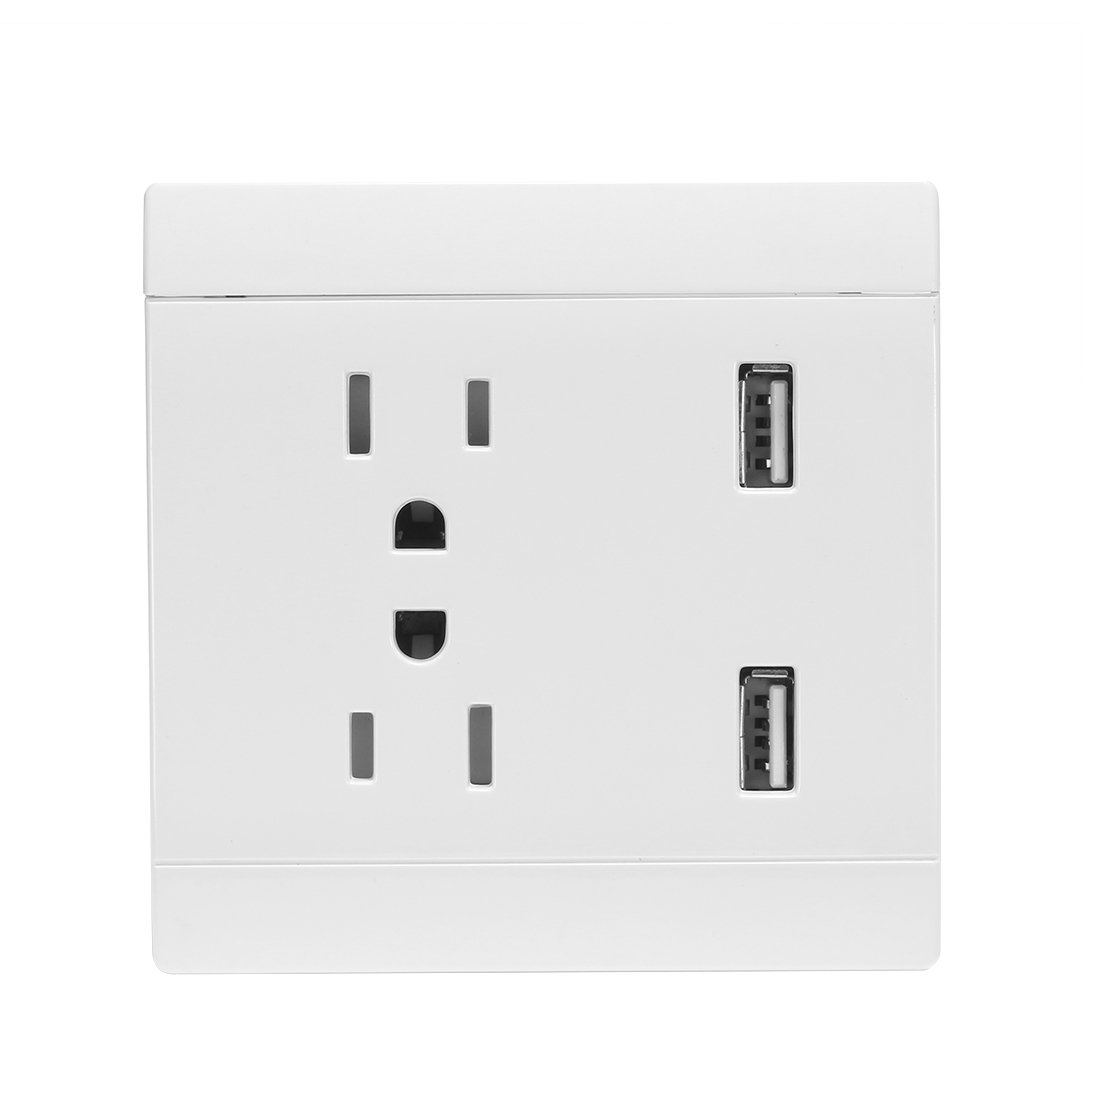 uxcell AC 110/220V 10/13A US Socket Dual USB Port Charging DC 5V 4.8A Mains Power Wall Outlet